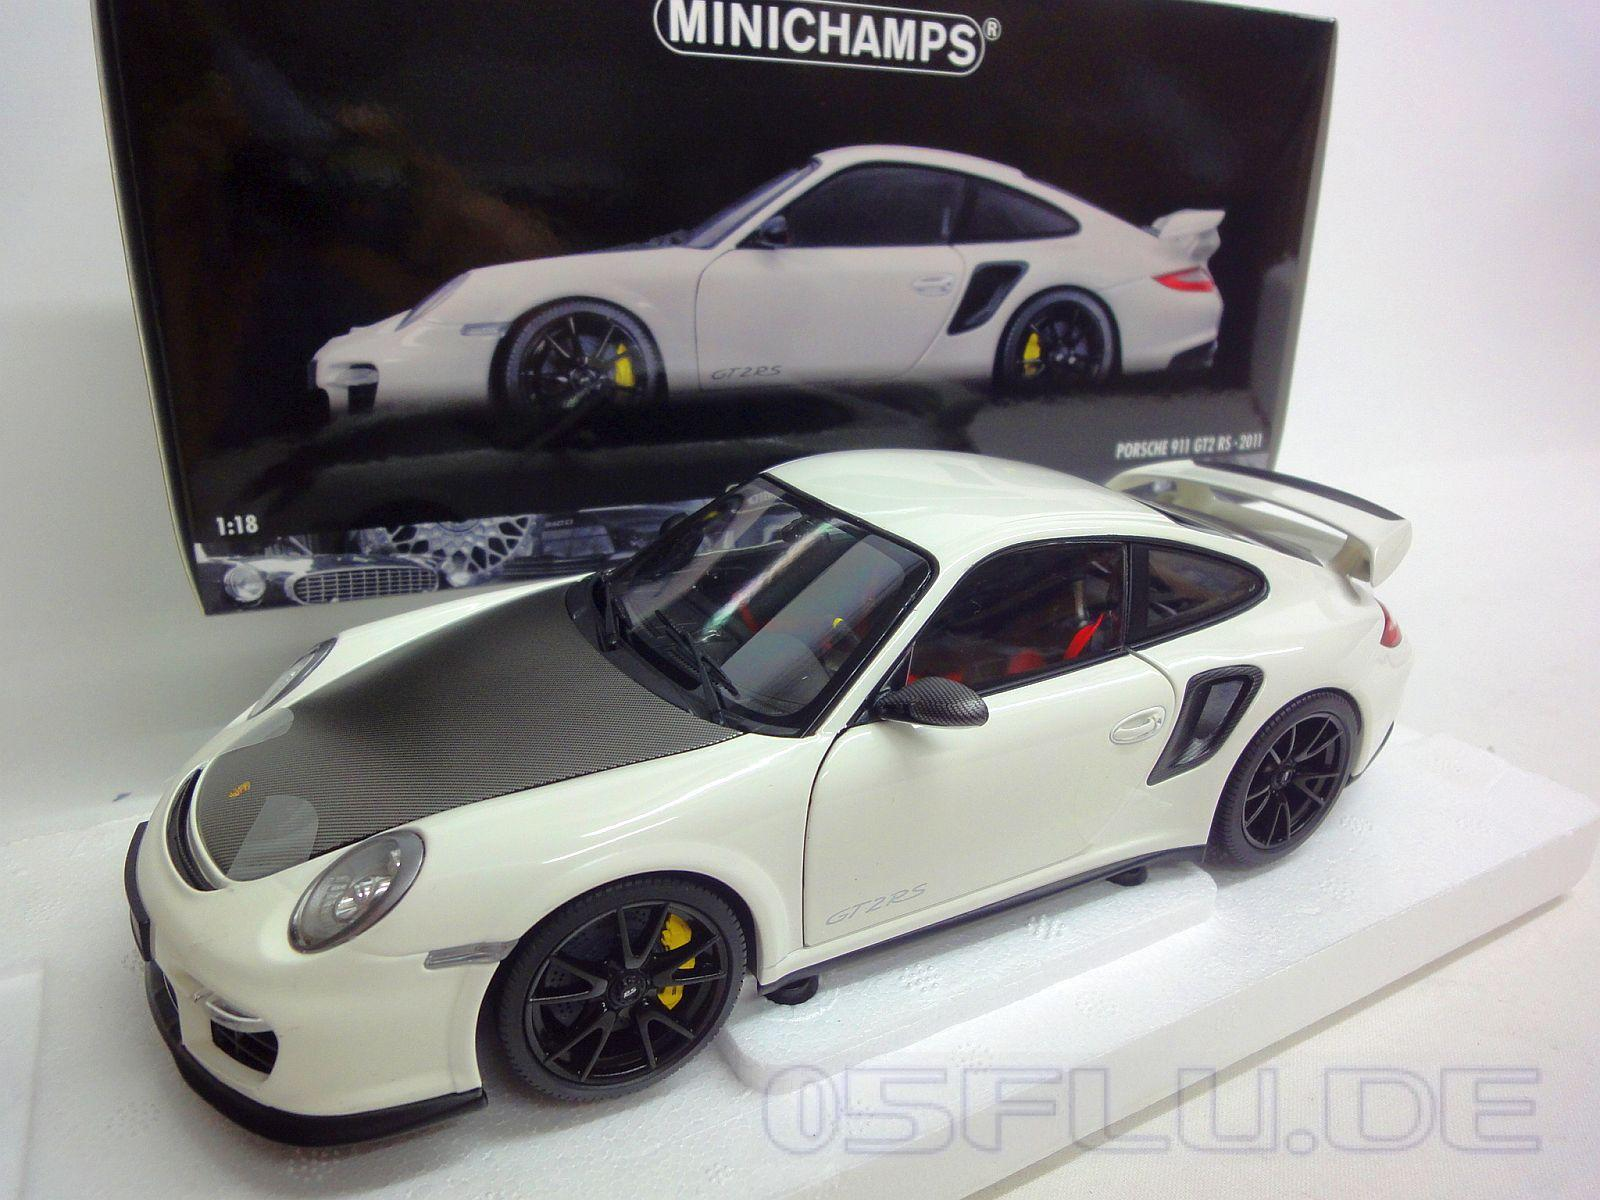 minichamps 1 18 porsche 911 997 ii gt2 rs 2011 white w black wheels neu. Black Bedroom Furniture Sets. Home Design Ideas